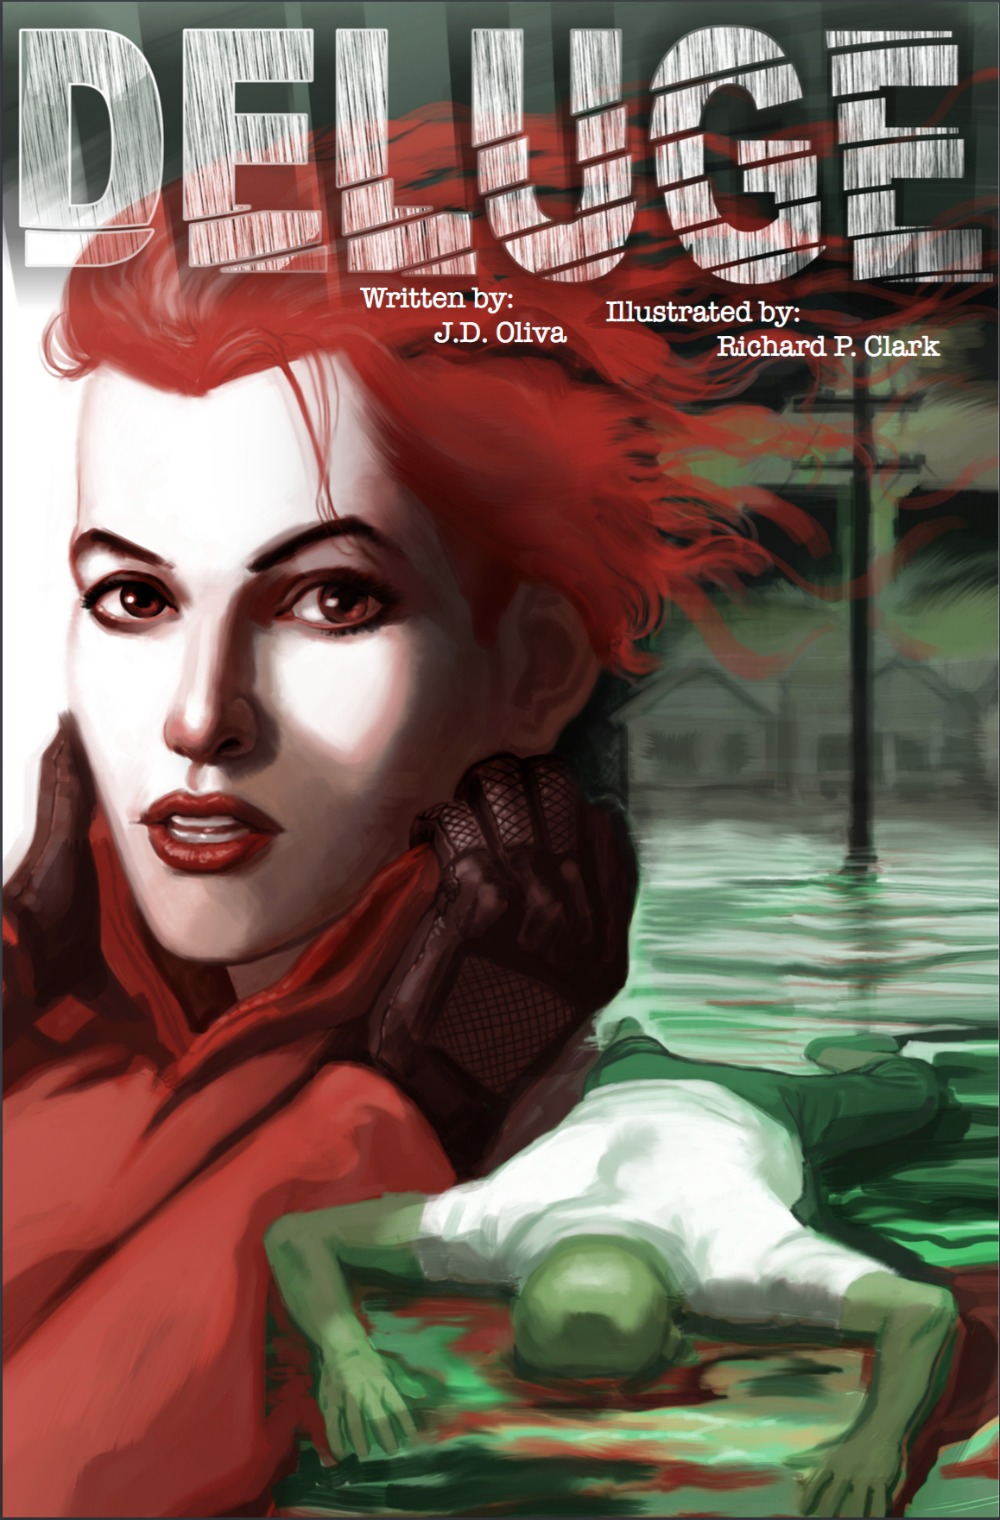 ADVANCE INDIE COMIC REVIEW: Deluge #2- From Bad to Worse